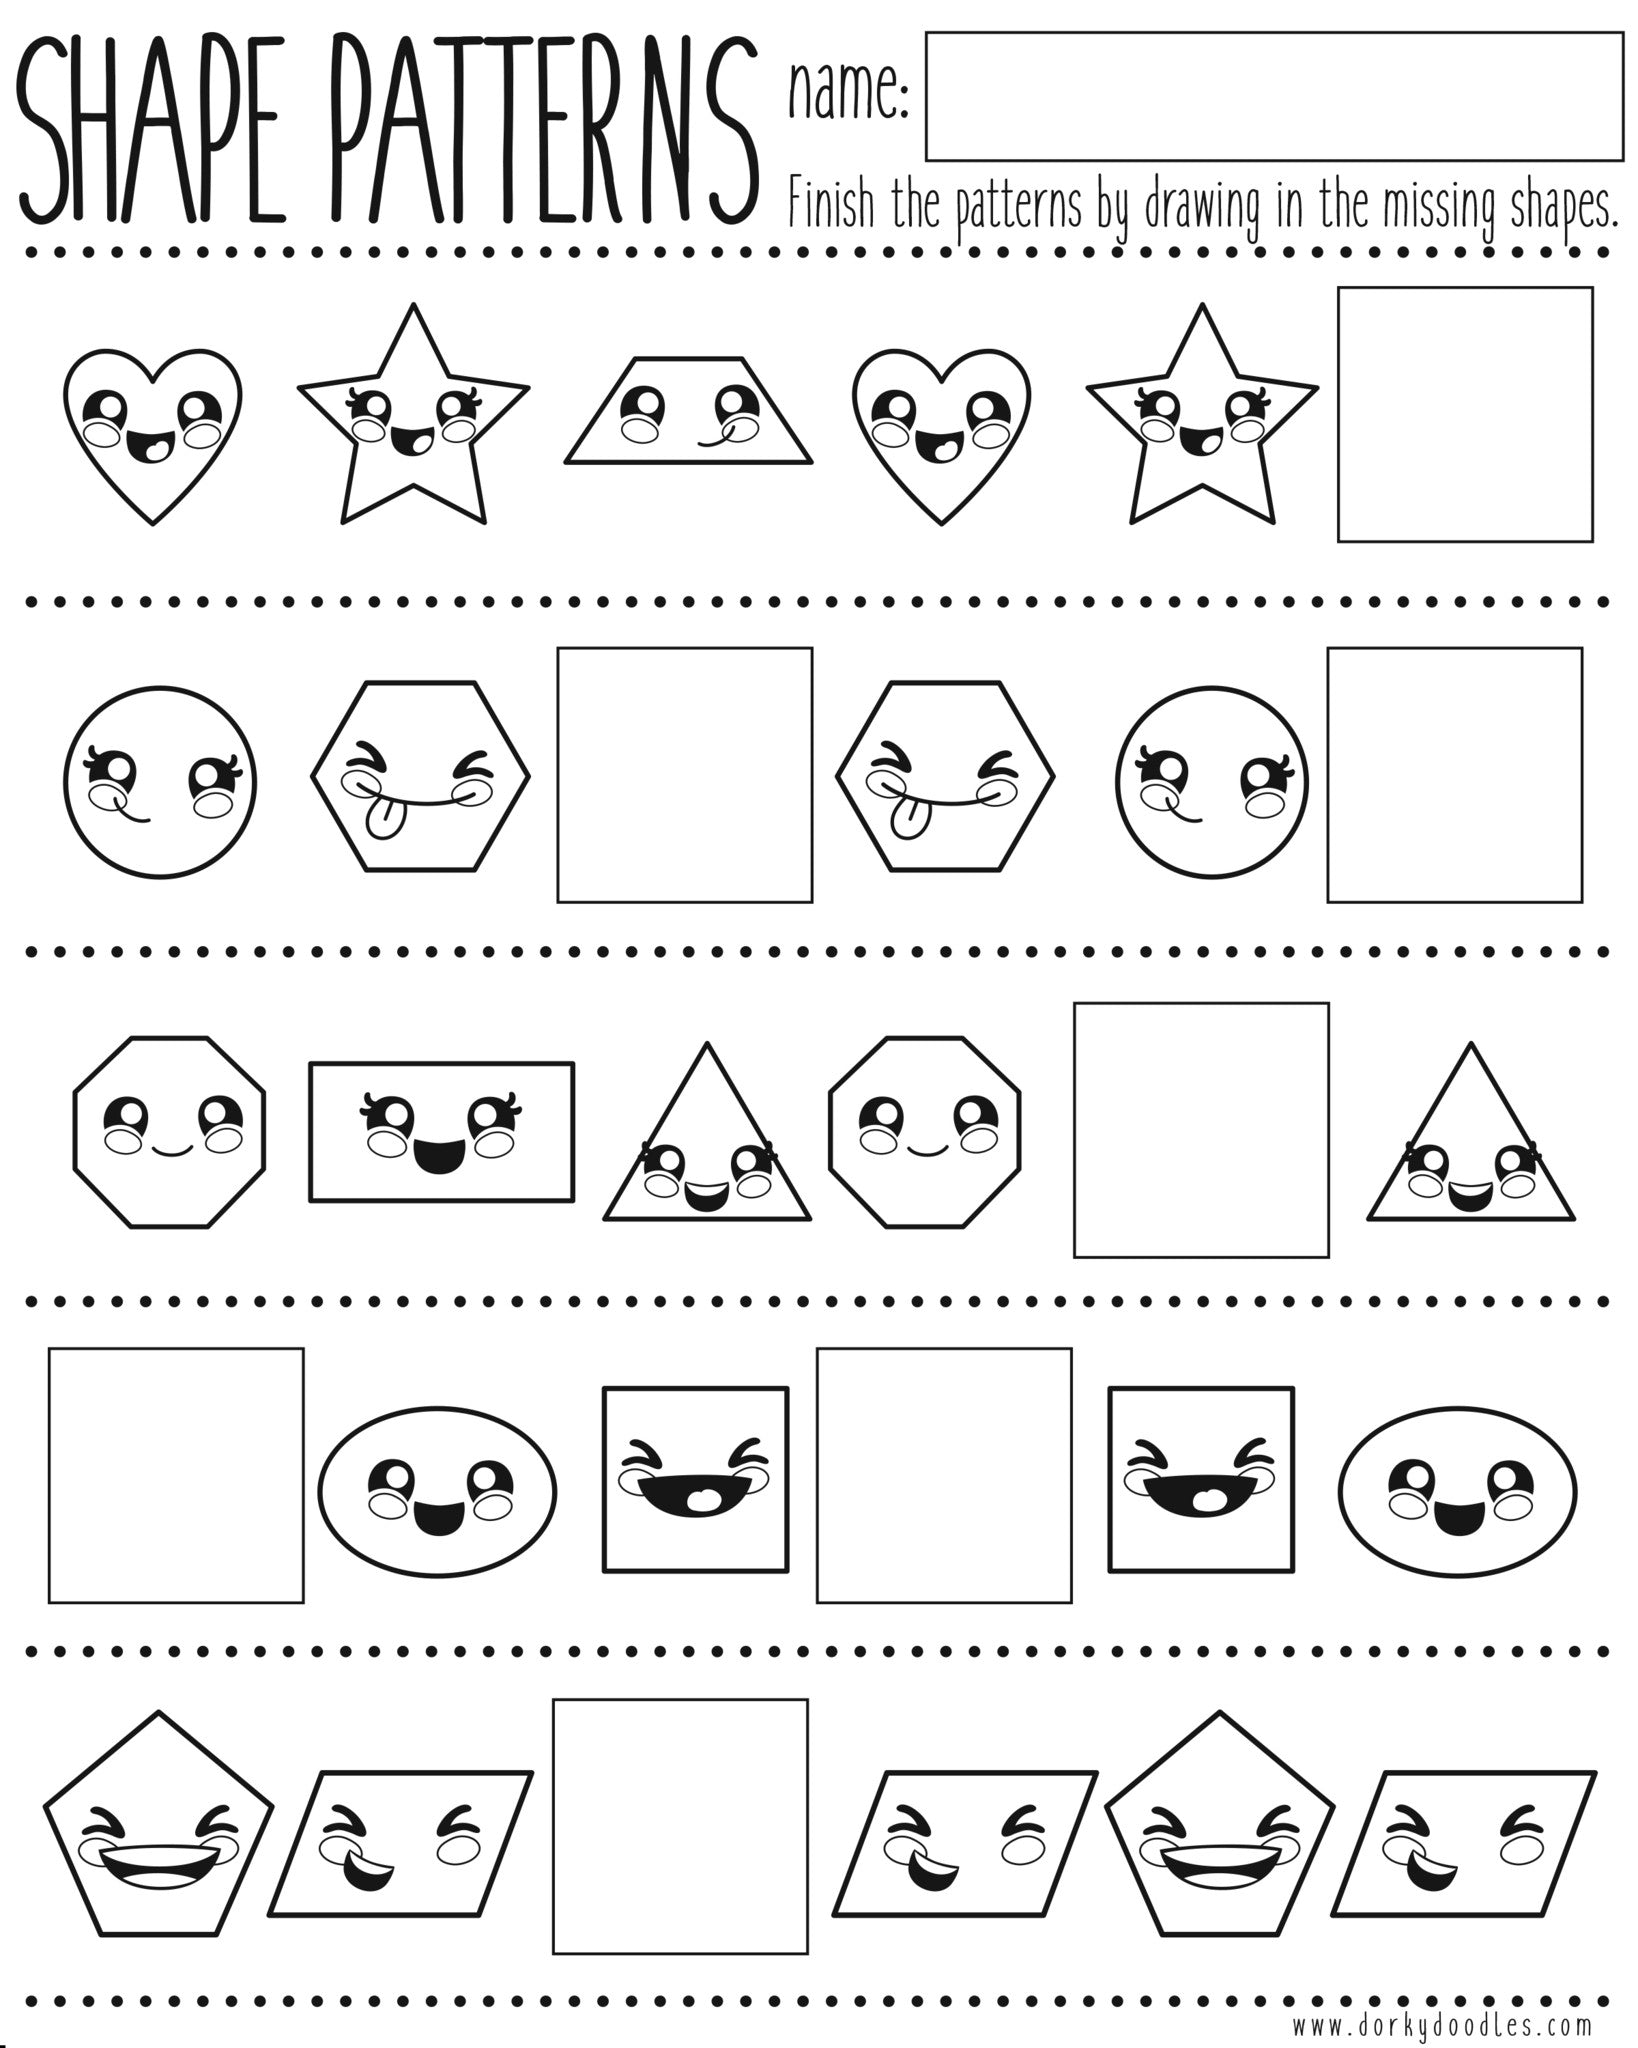 Shapes and Pattern Practice Printable Worksheet